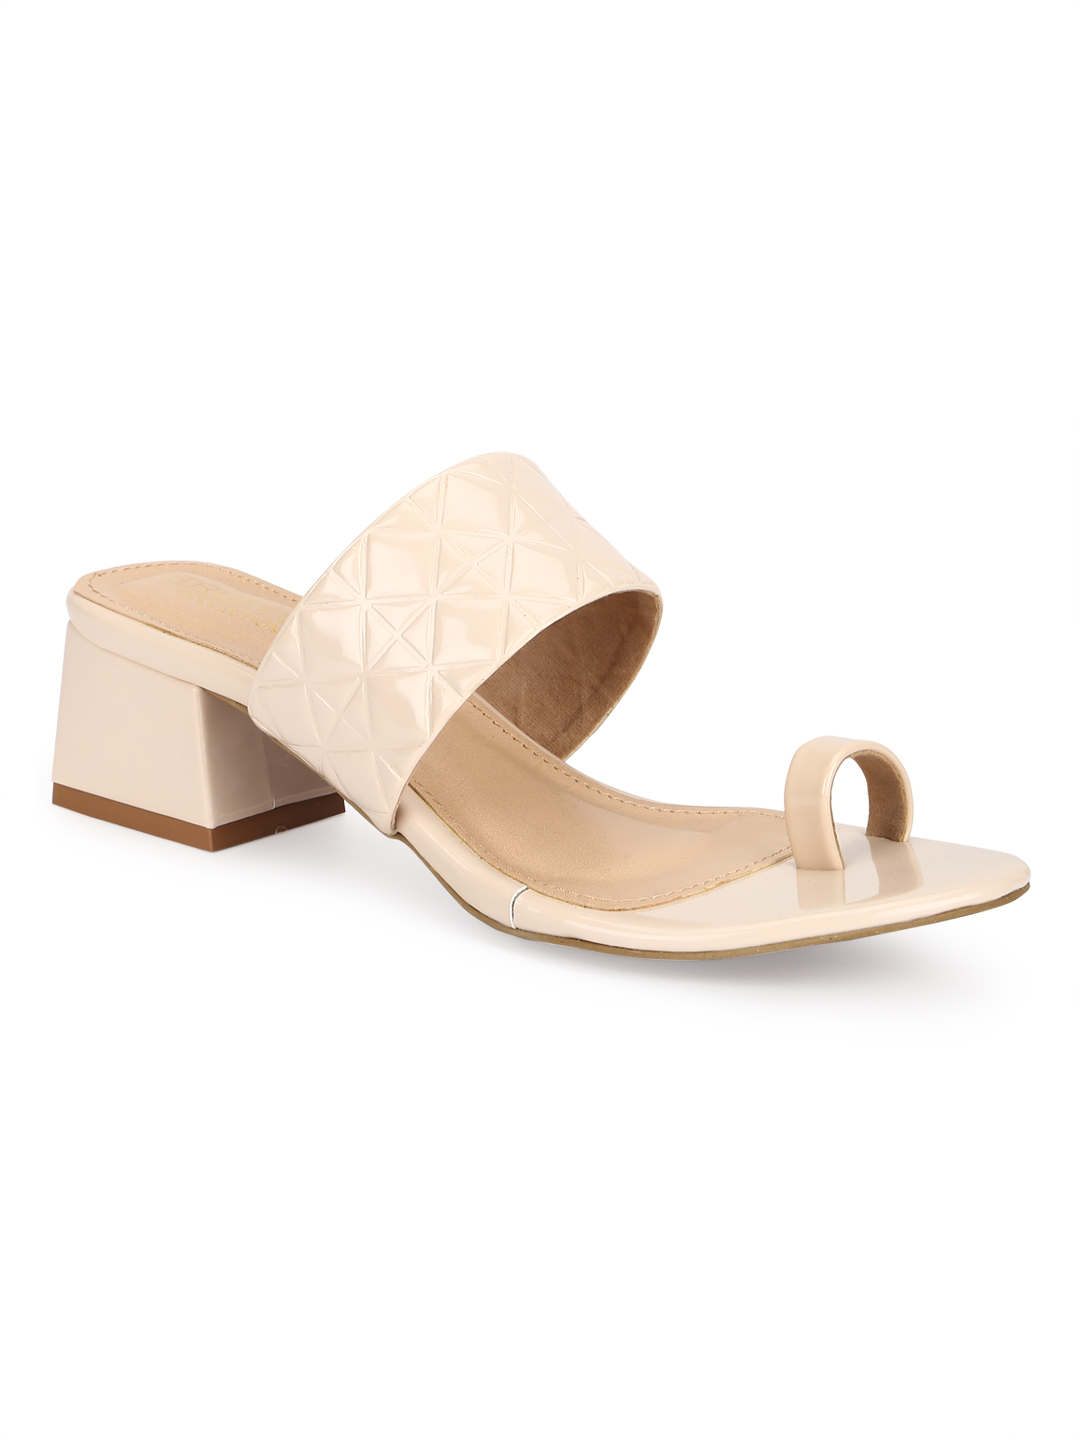 Truffle Collection | Truffle Collection Cream Patent Textured Slip On Sandals